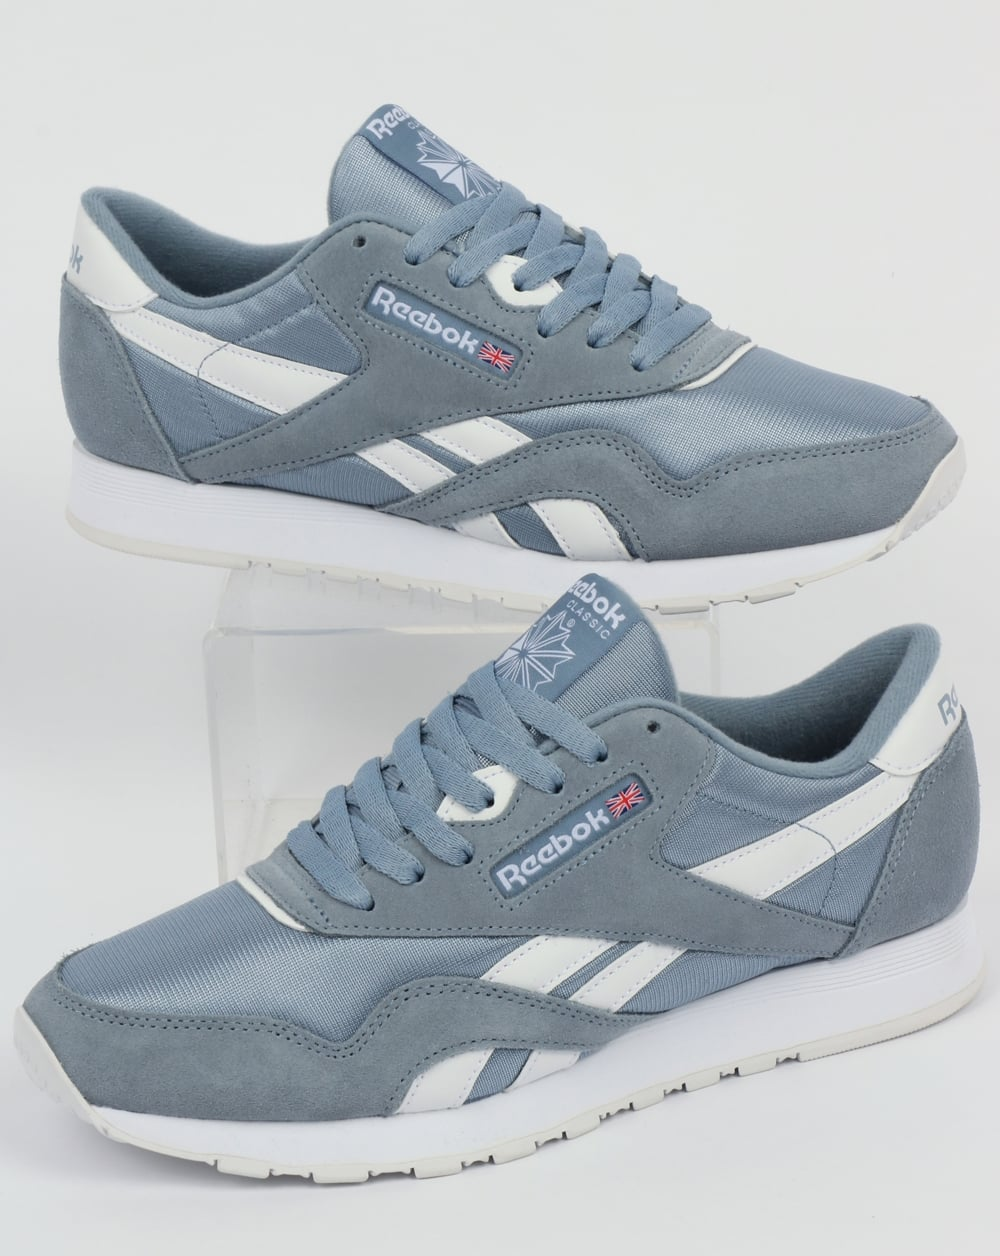 fded977a7a1f1 Reebok Reebok Classic Nylon Trainers light Blue Grey  White